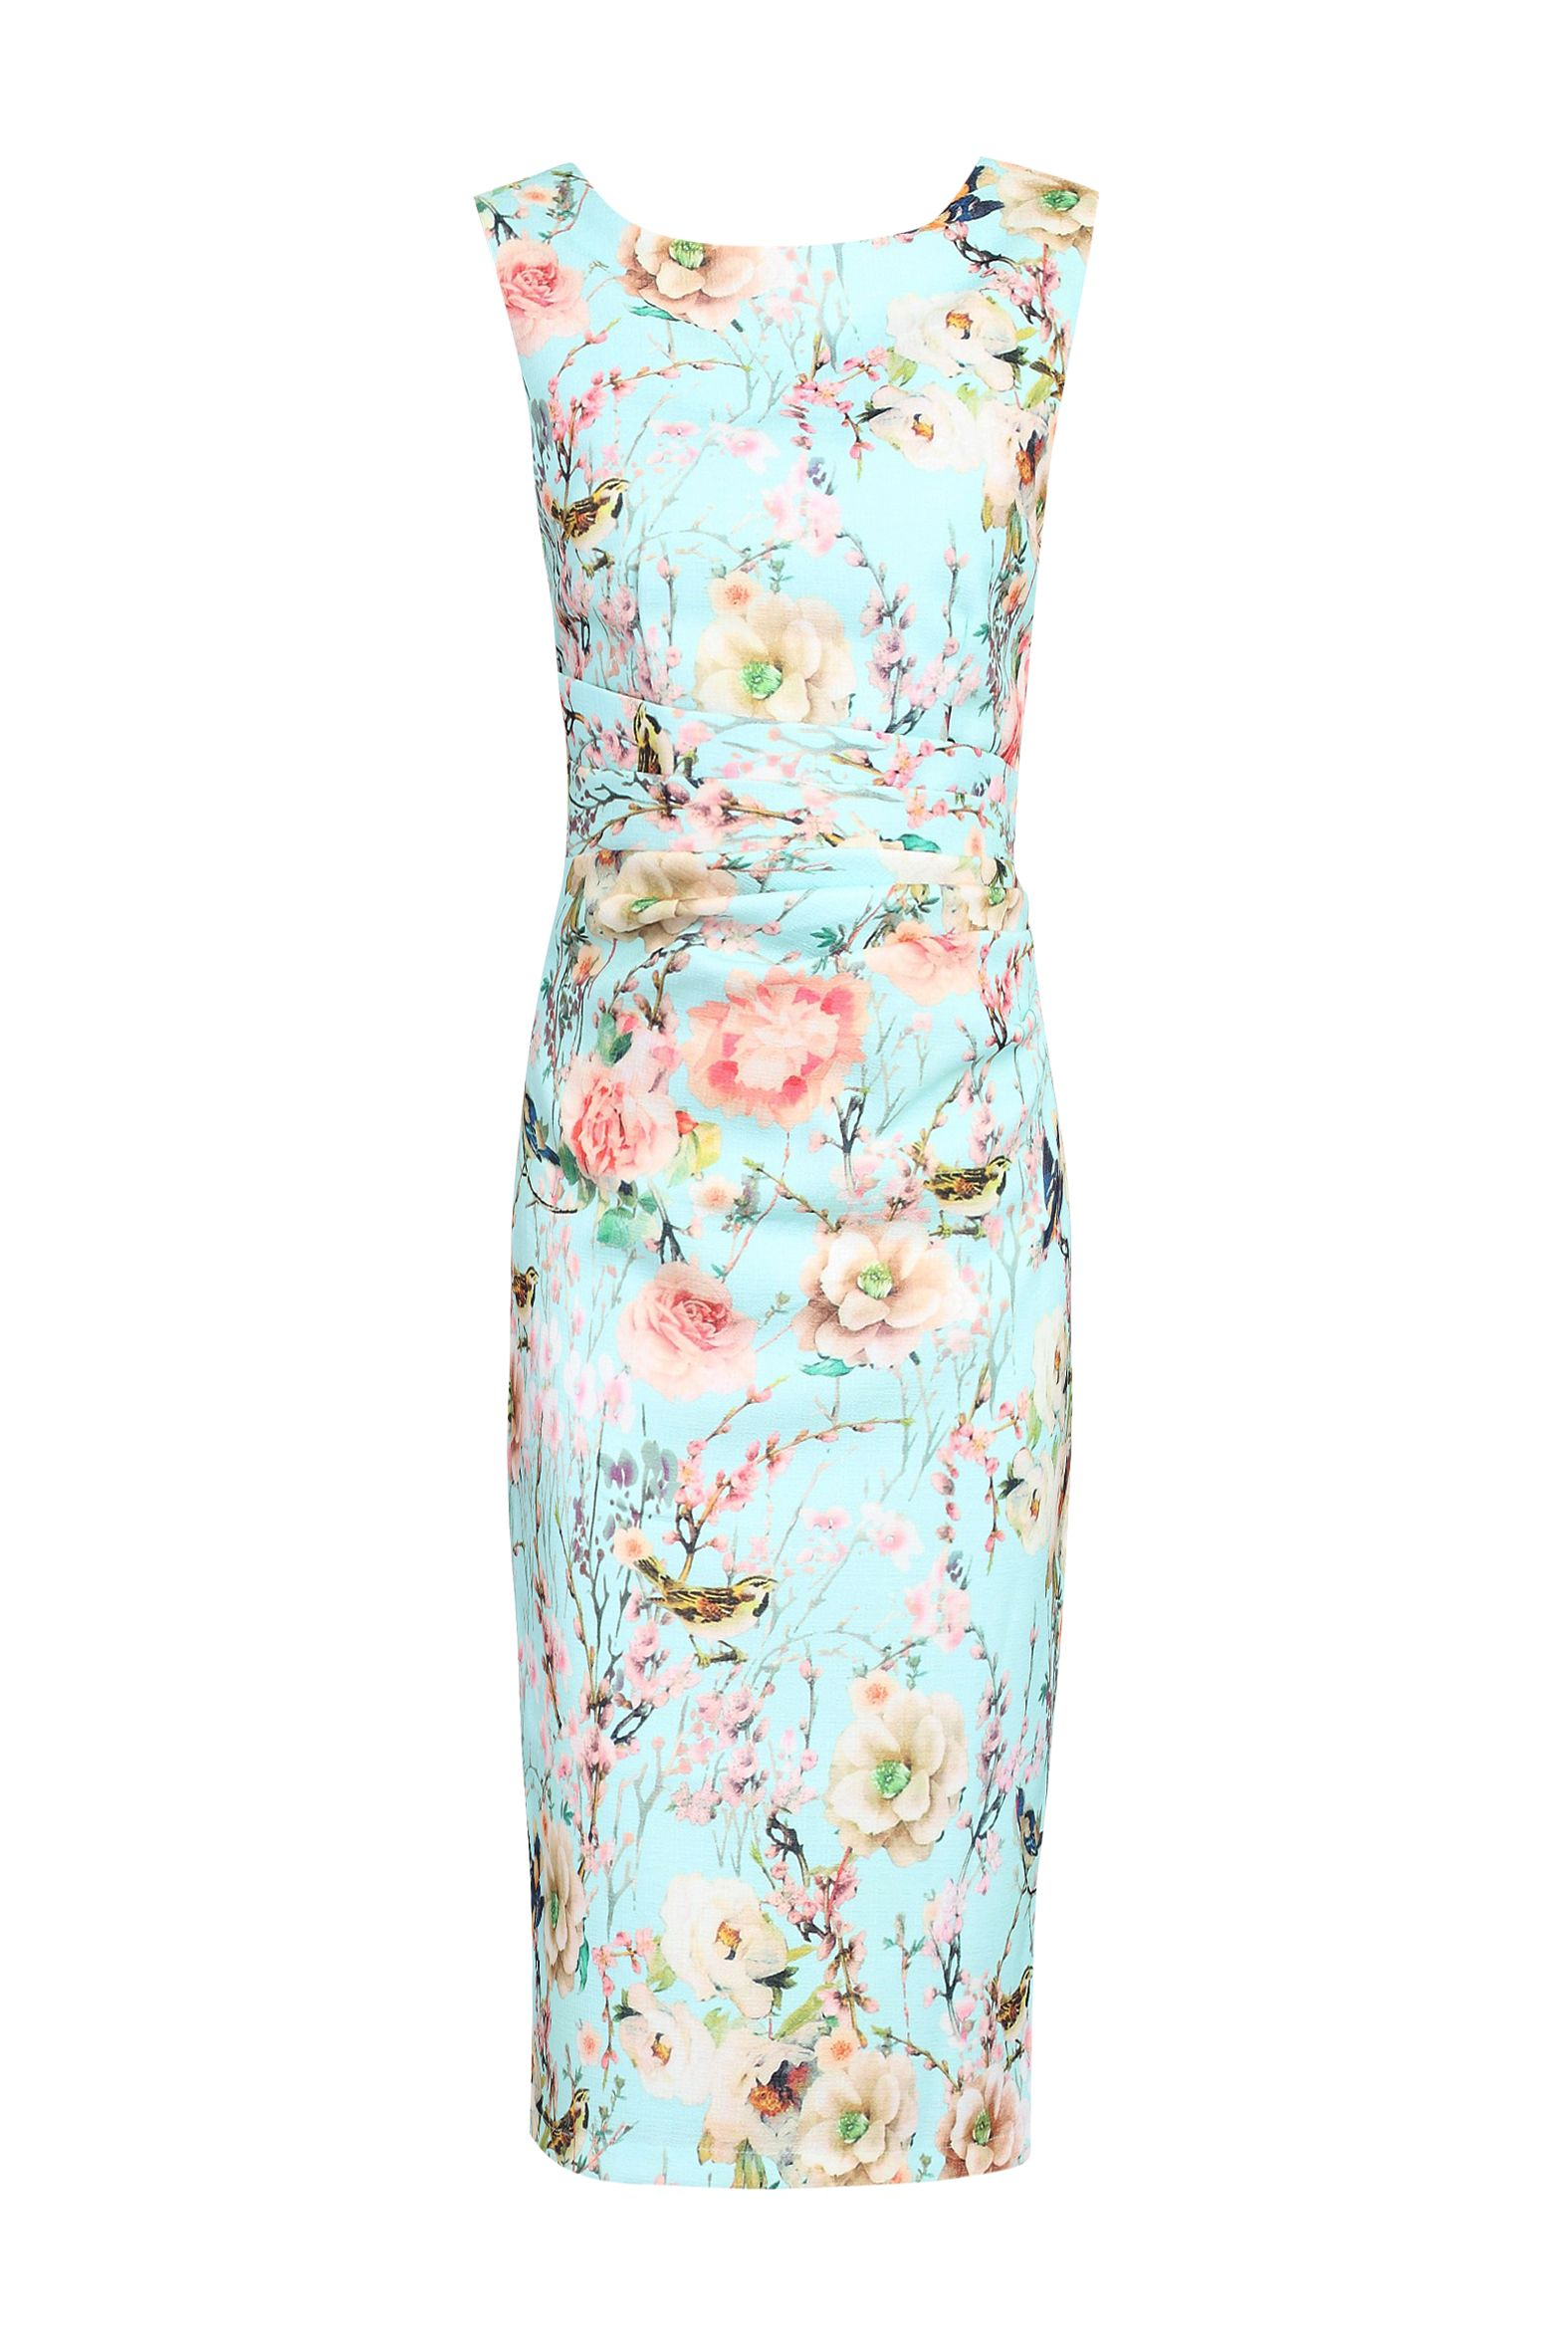 Jolie Moi Ruched Floral Printed Dress, Aqua